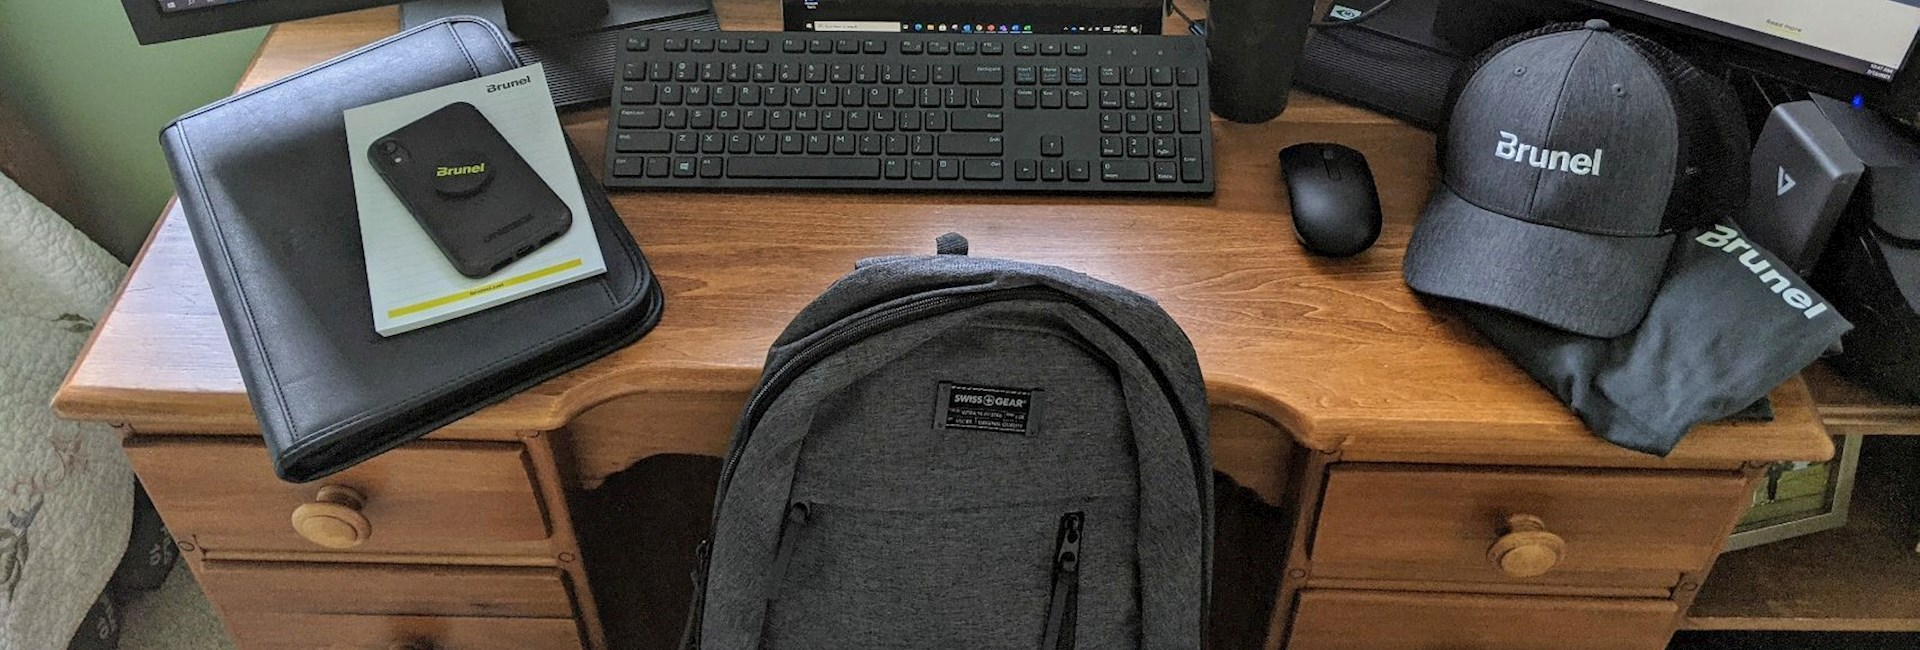 Brunel swag and computer monitors